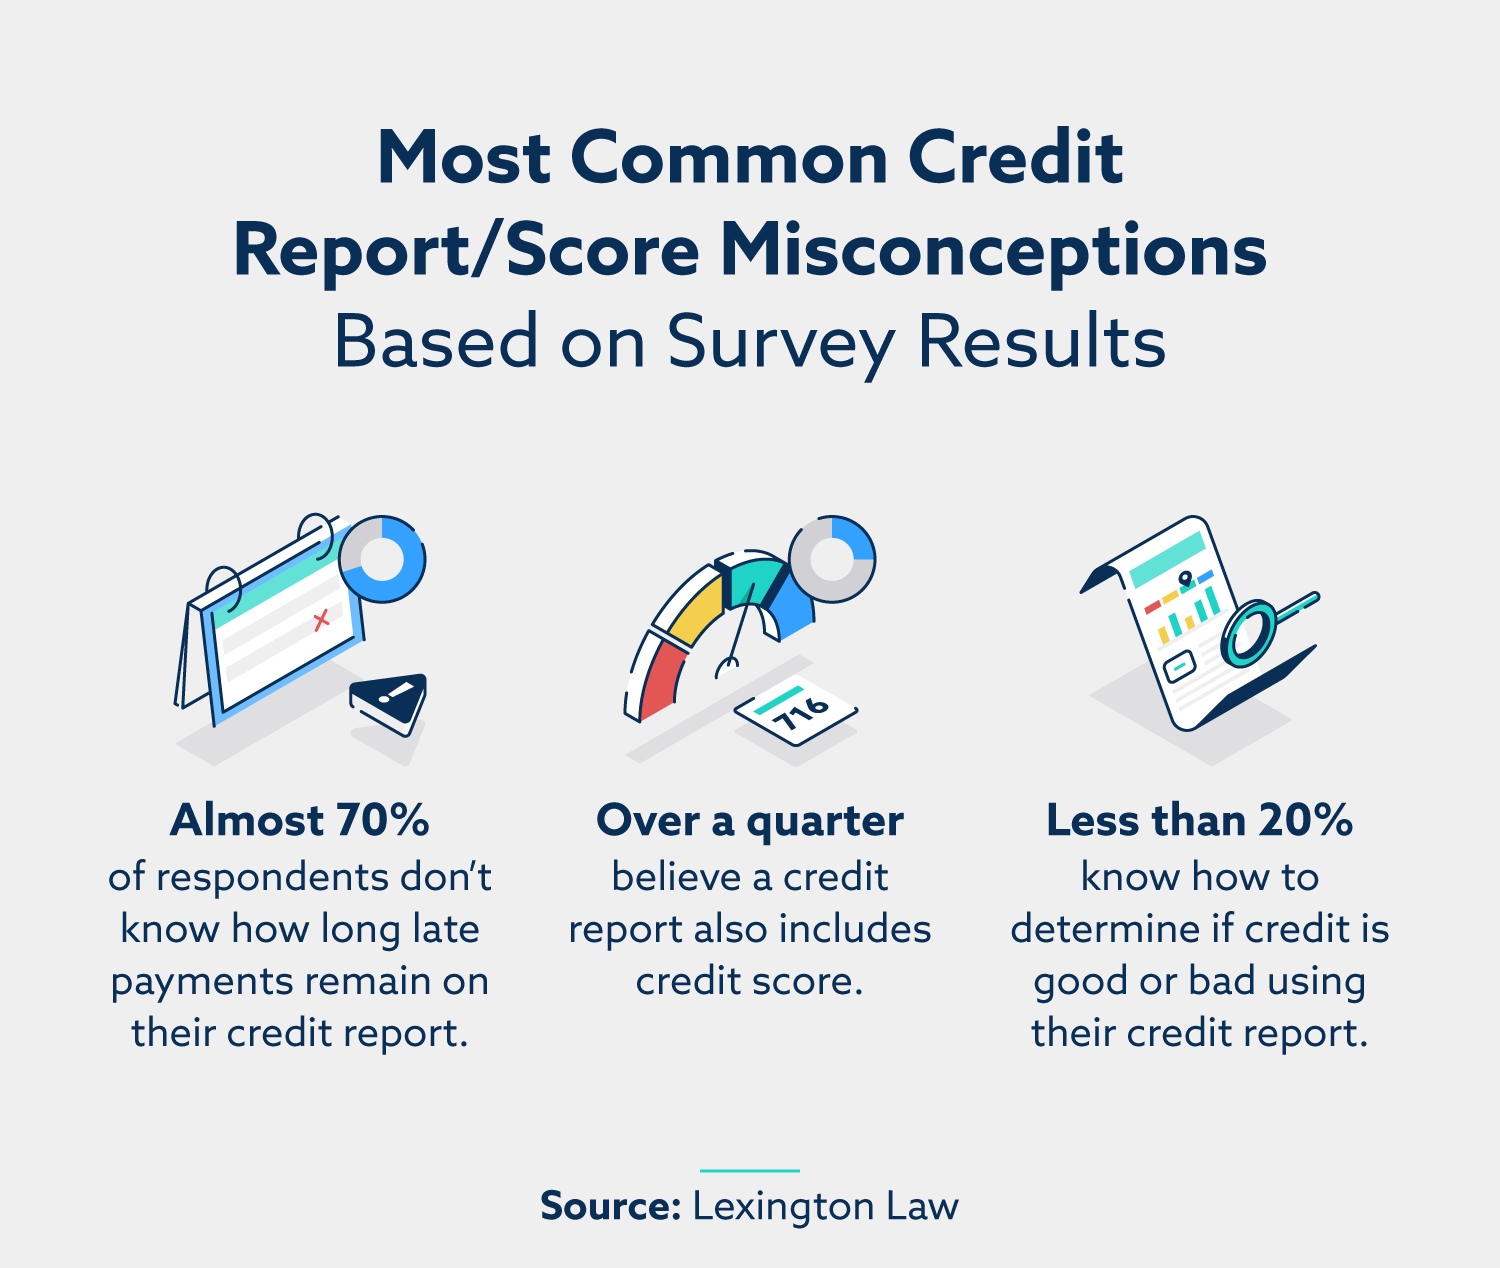 Most common credit report/score misconceptions based on survey results. Almost 70% of respondents don't know how long late payments remain on their credit report; over a quarter believe a credit report also includes a credit score; less than 20% know how to determine if credit is good or bad using their credit report.